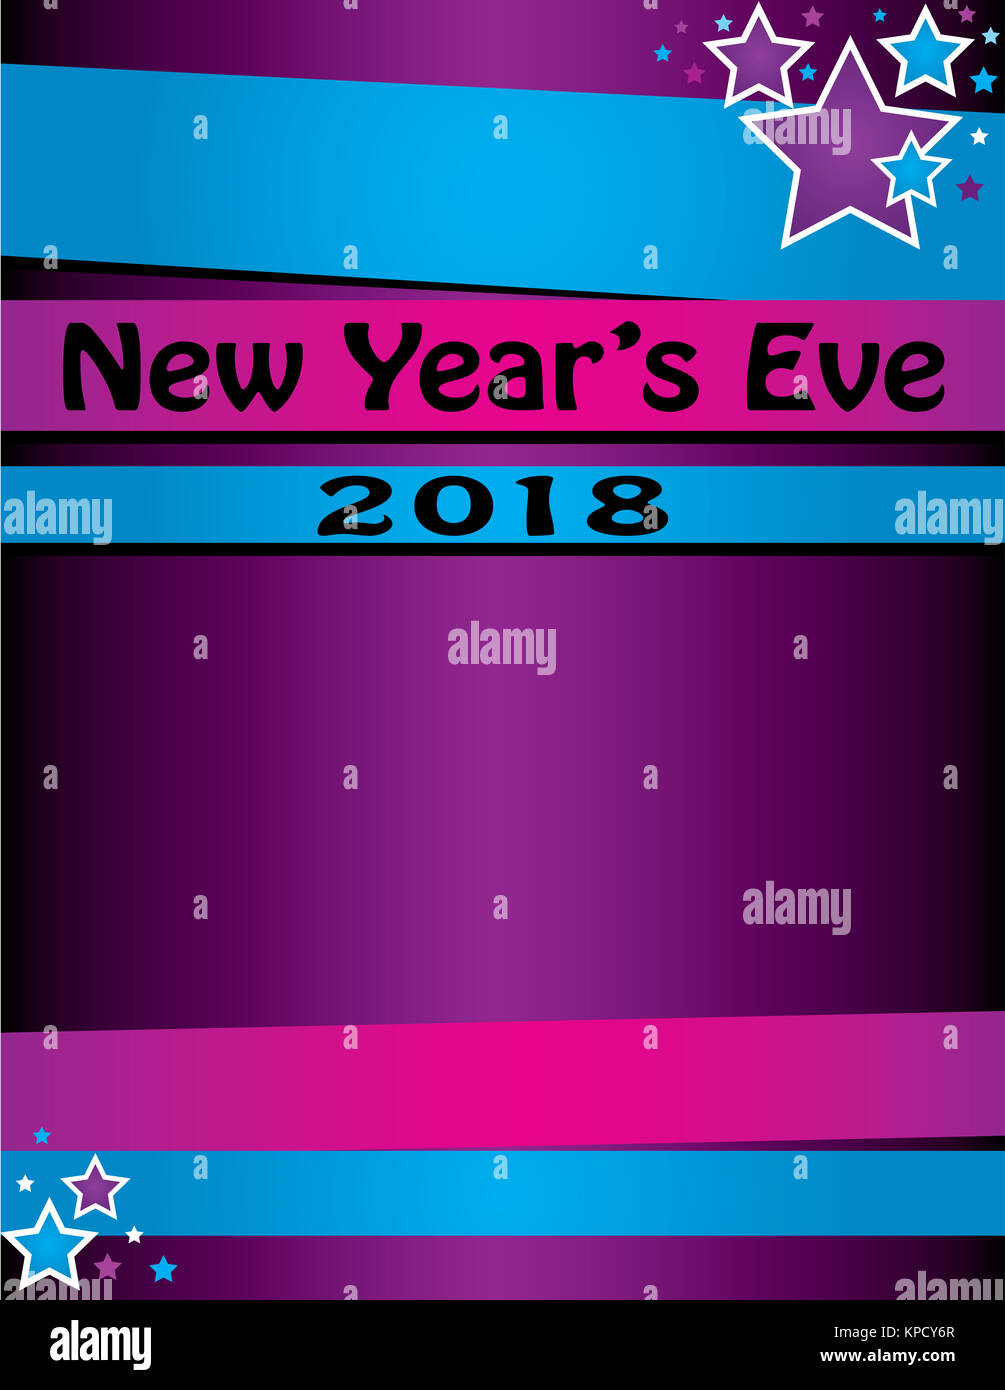 new years eve party for 2018 poster or invitation template bright colors for celebration